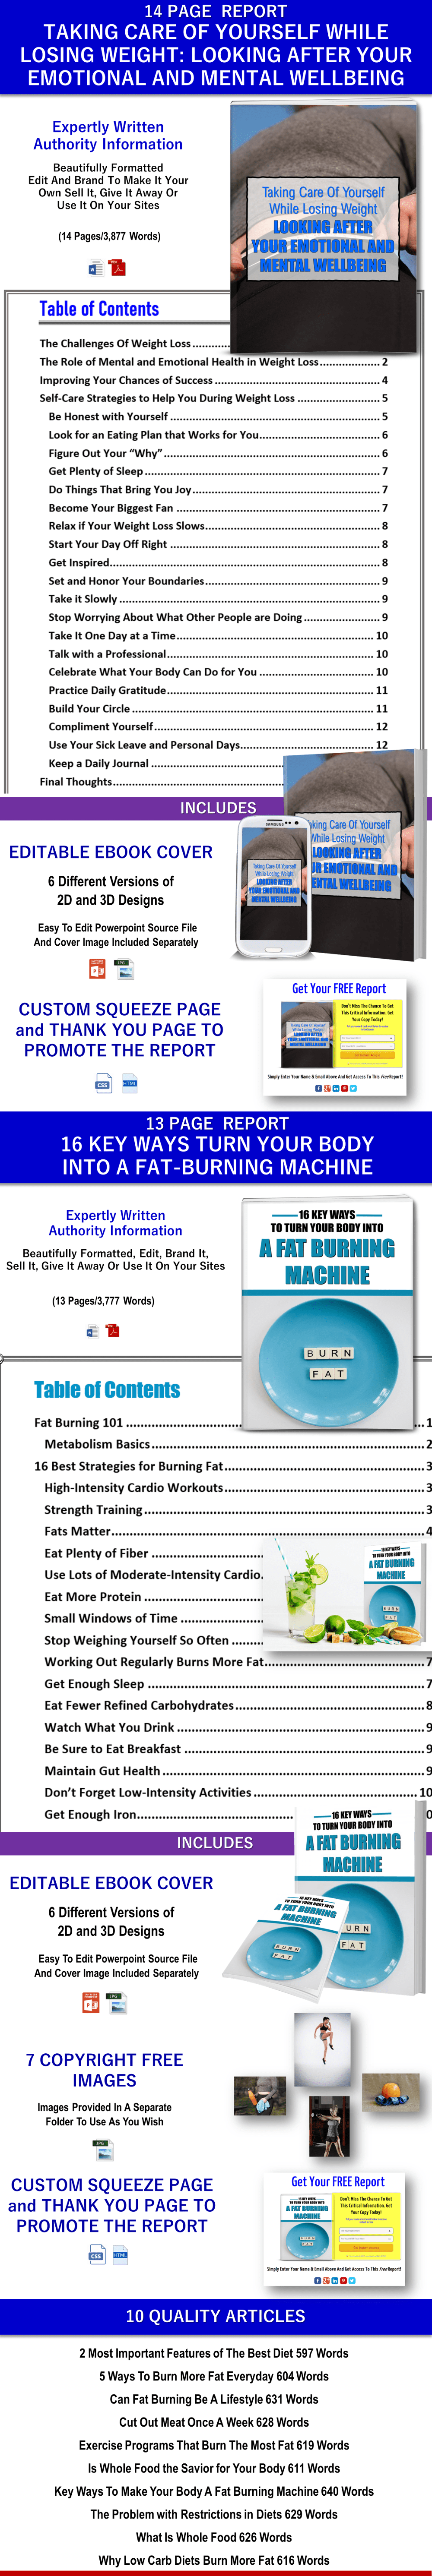 Weight Loss and Fat Burning Reports, Articles Private Label Rights